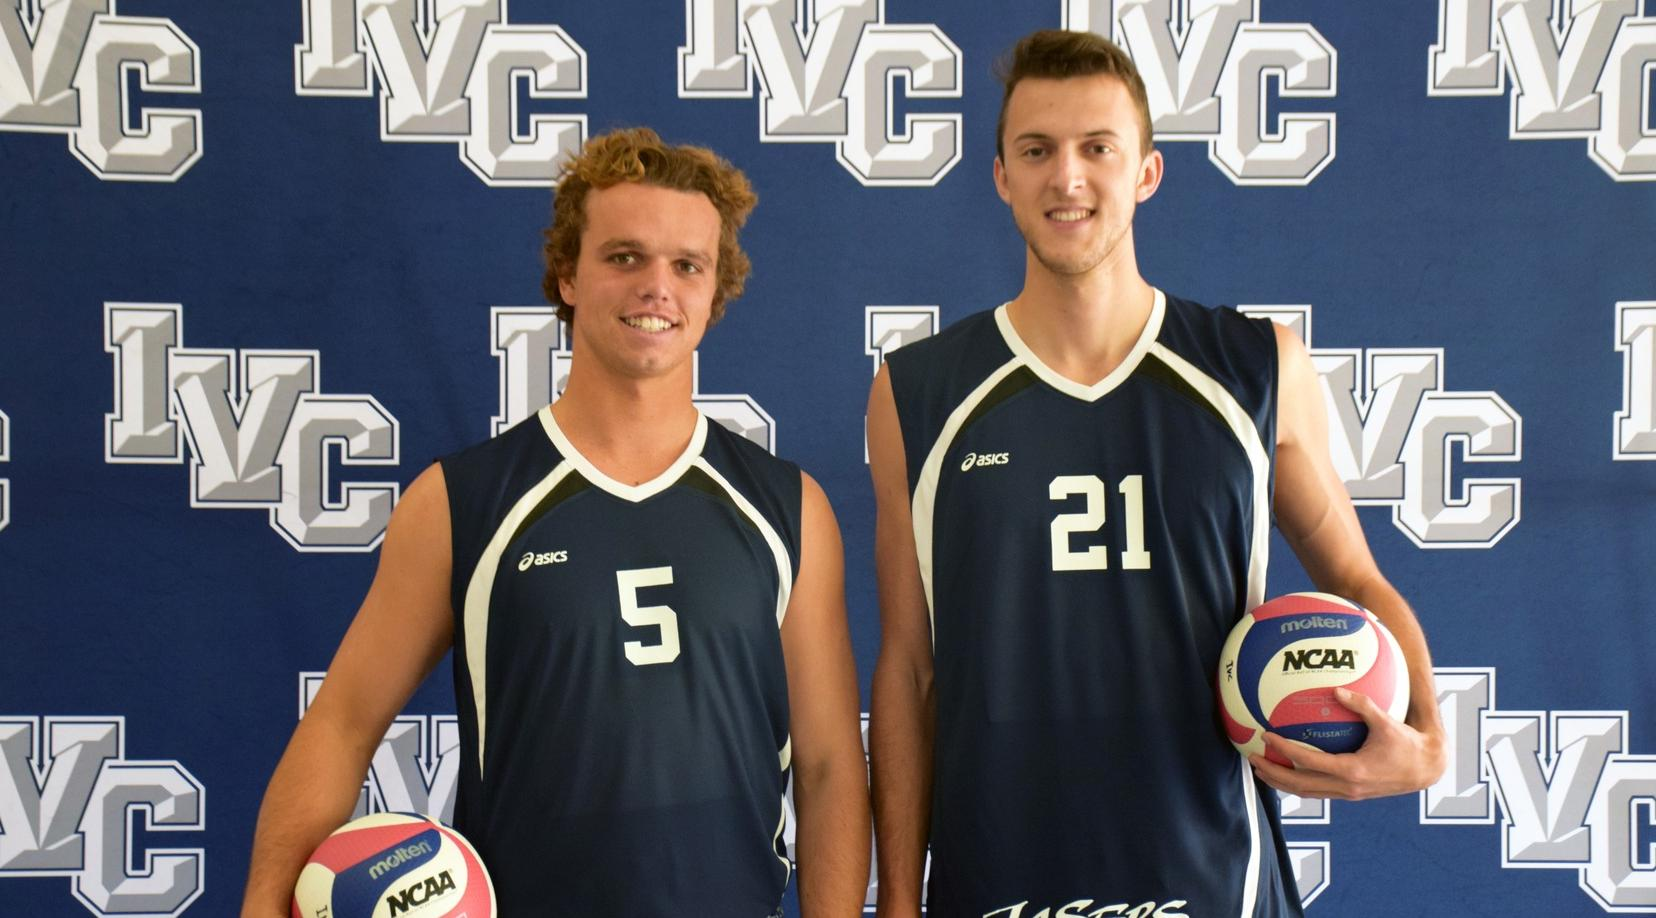 Four men's volleyball players named to all-conference squads